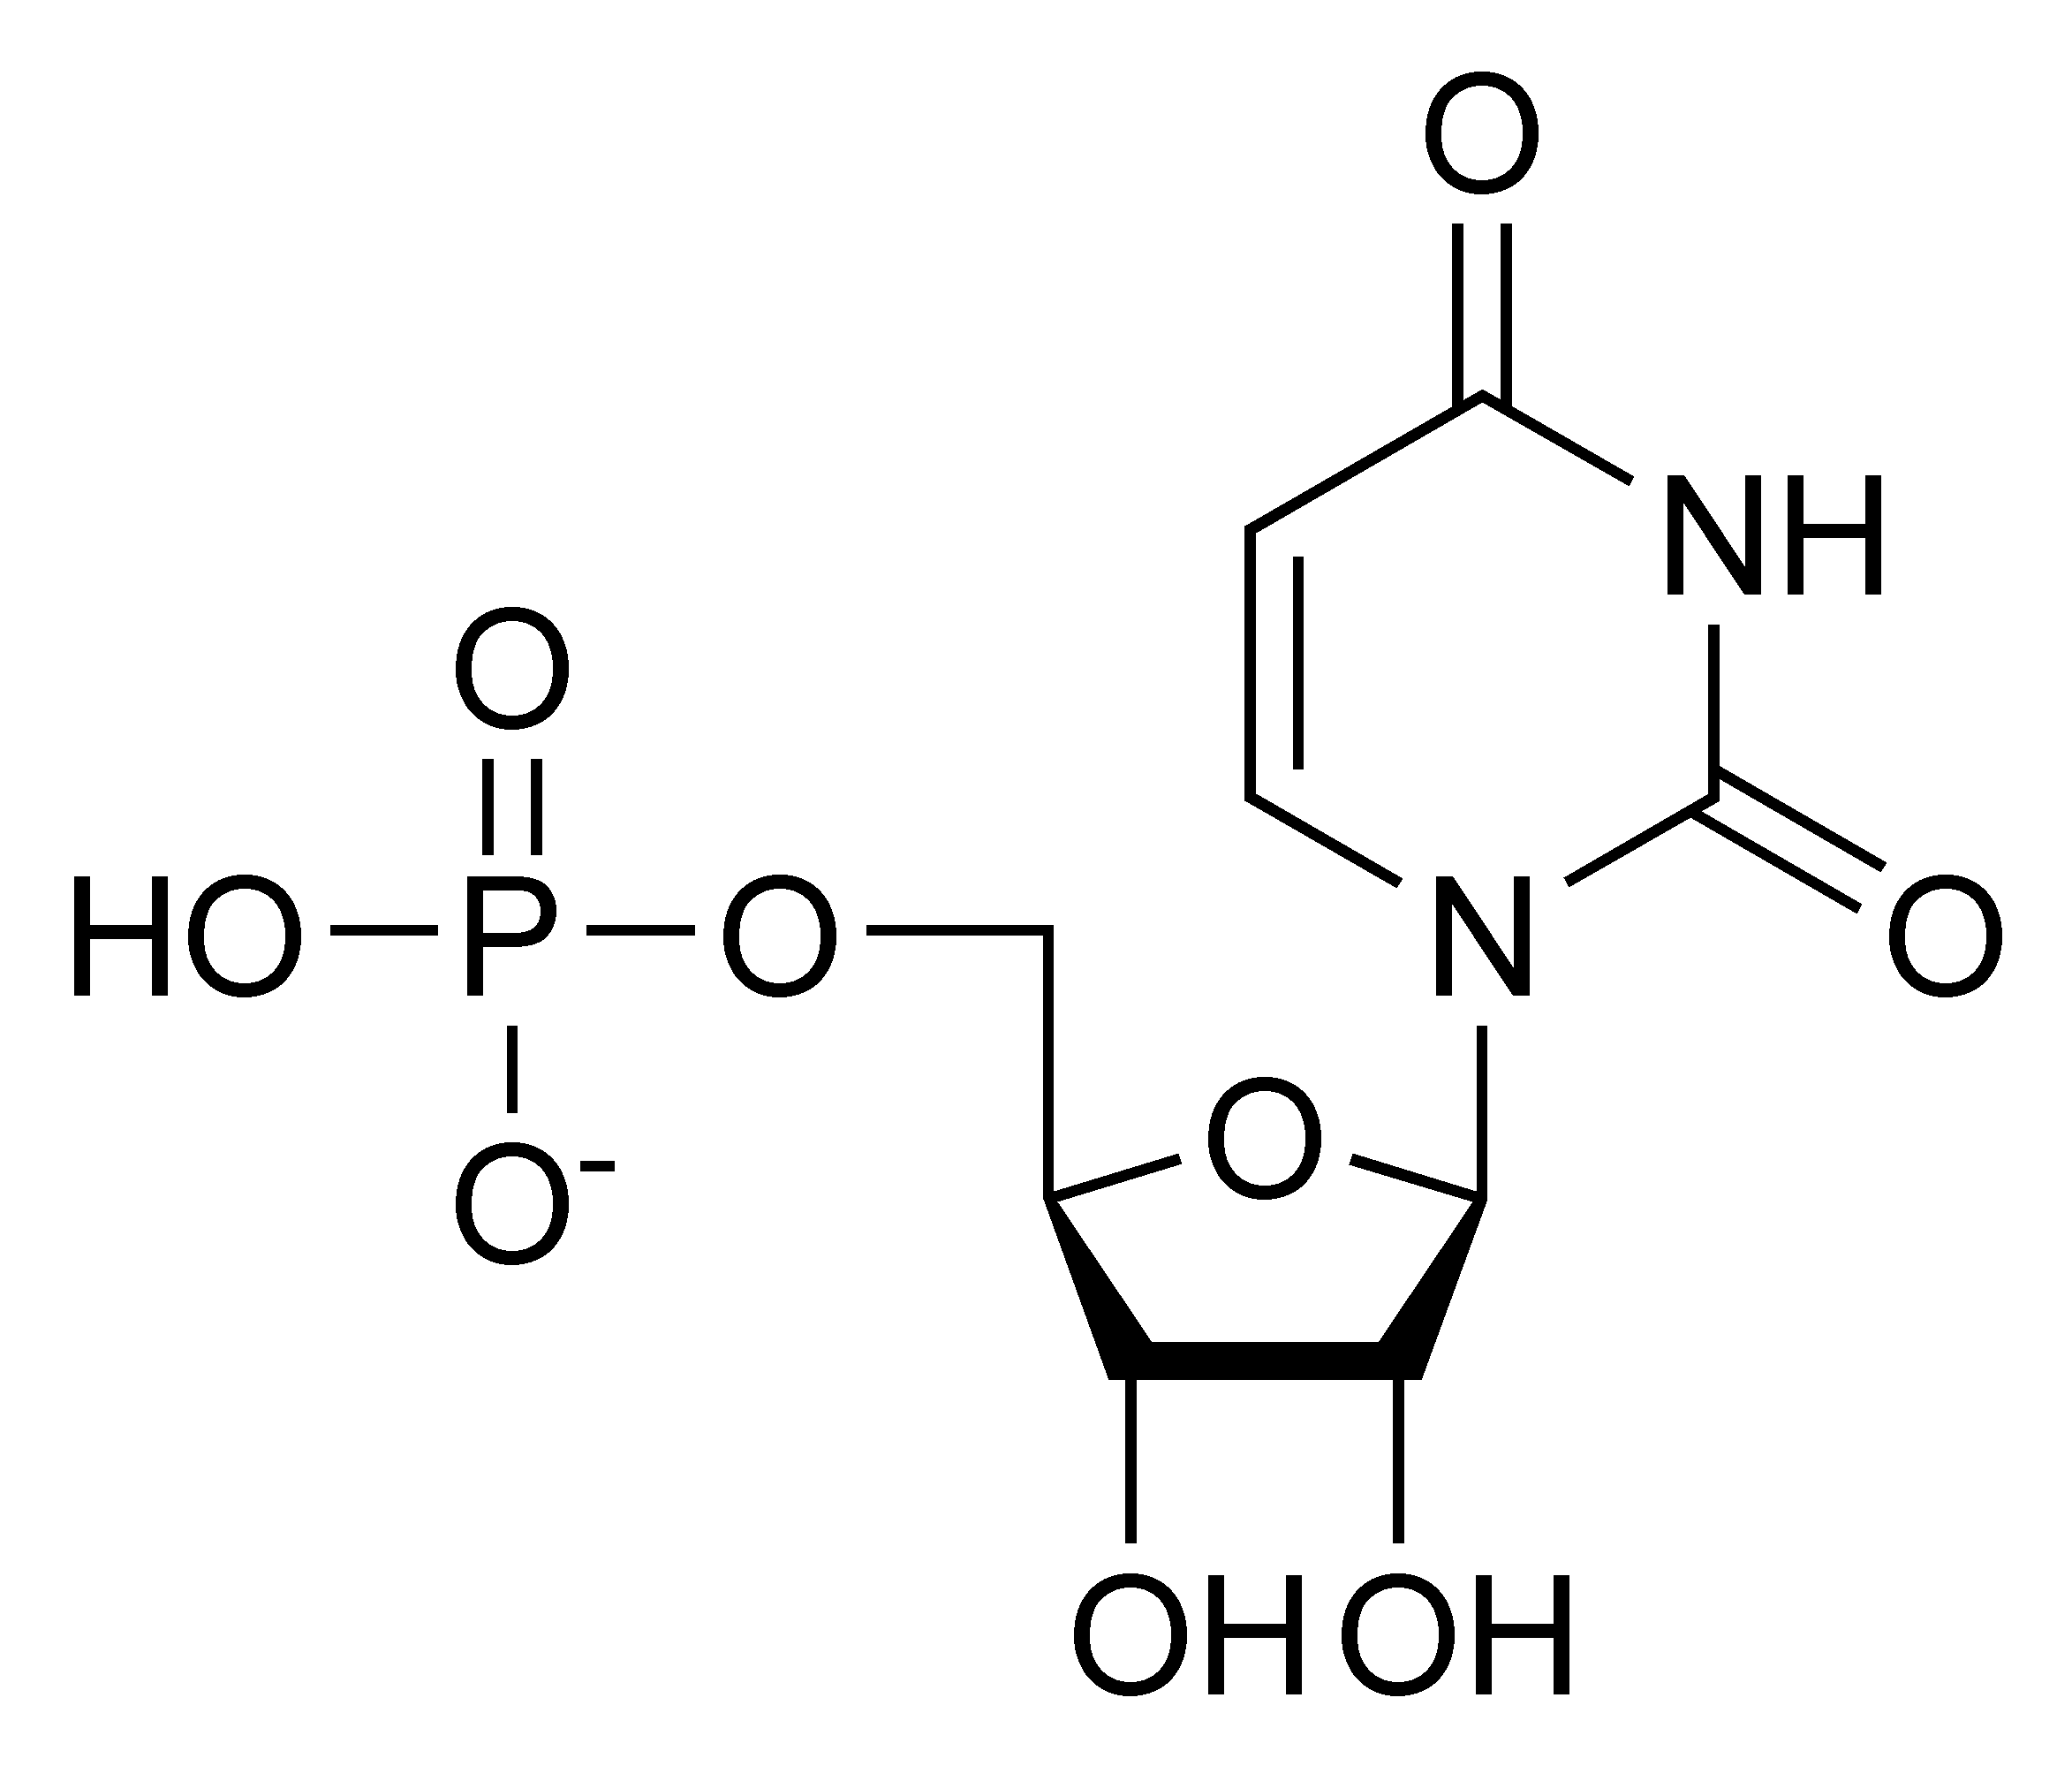 Chemical structure of uridine monophosphate